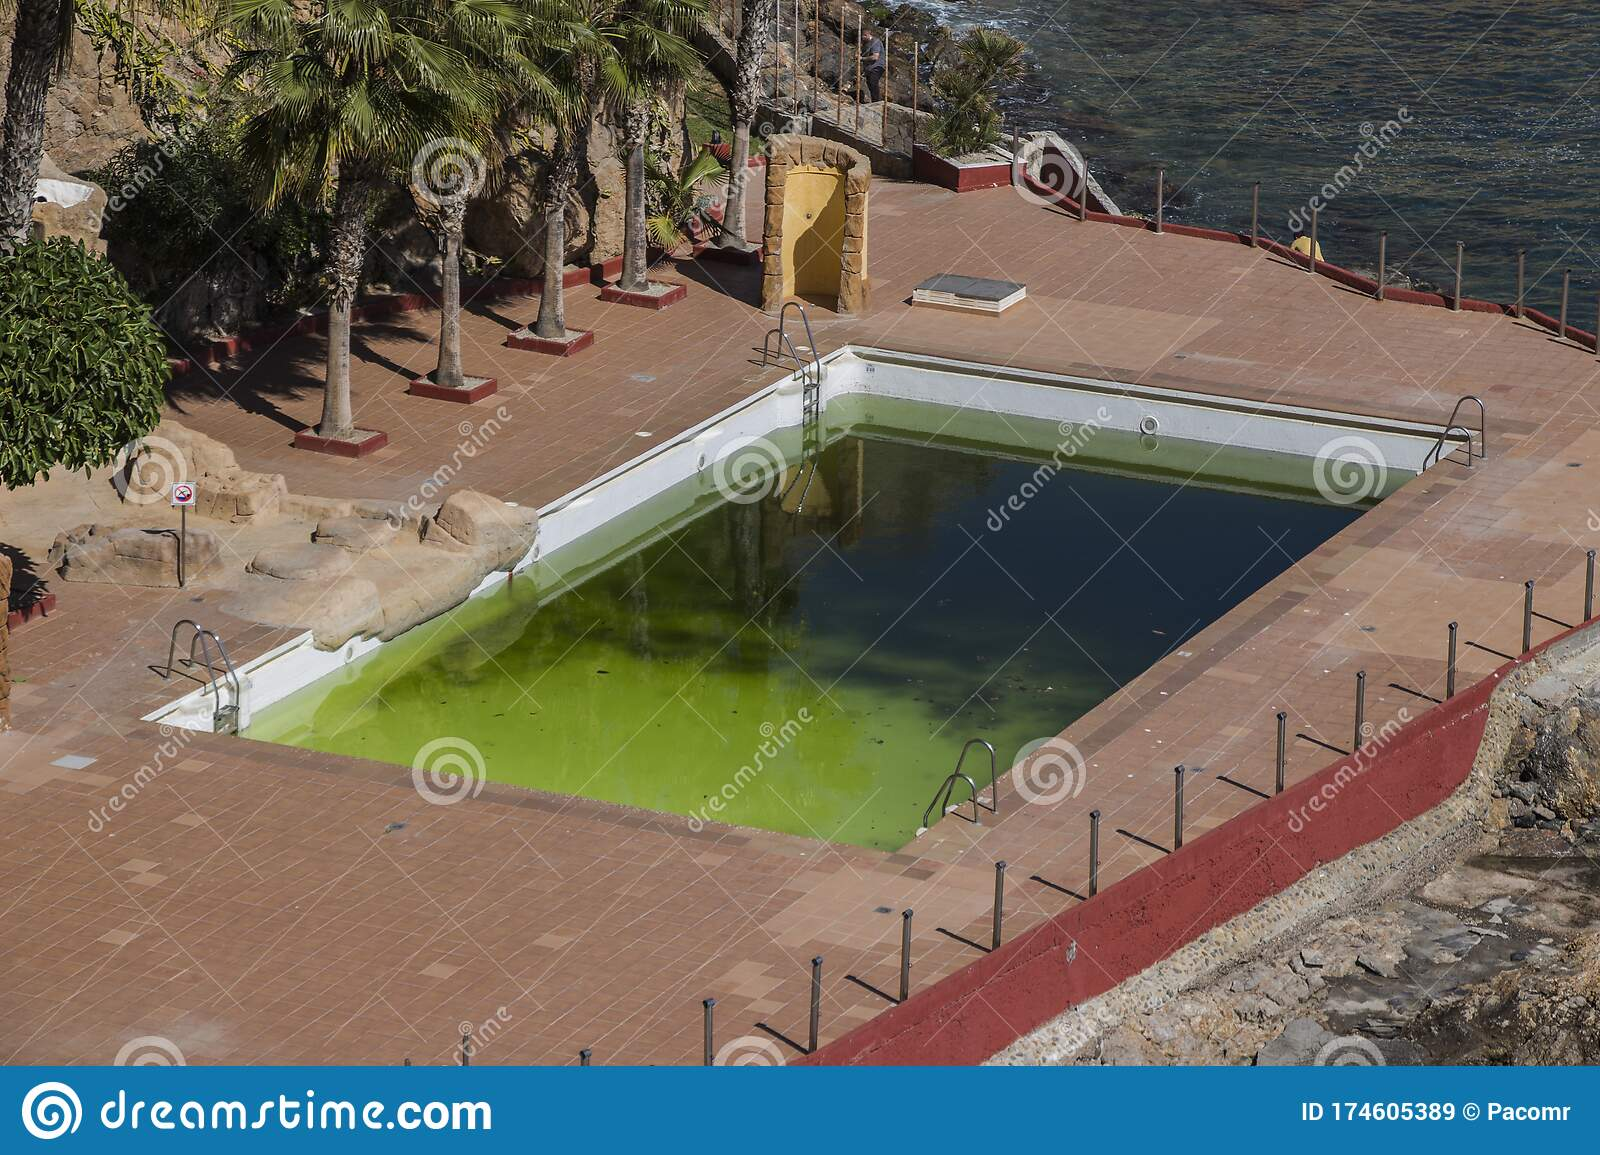 A Dirty And Abandoned Pool With Green Water Scary Pool Dyrty Waterl Abandoned Swimming Pool Ruined Pool Stock Image Image Of Away Rustic 174605389